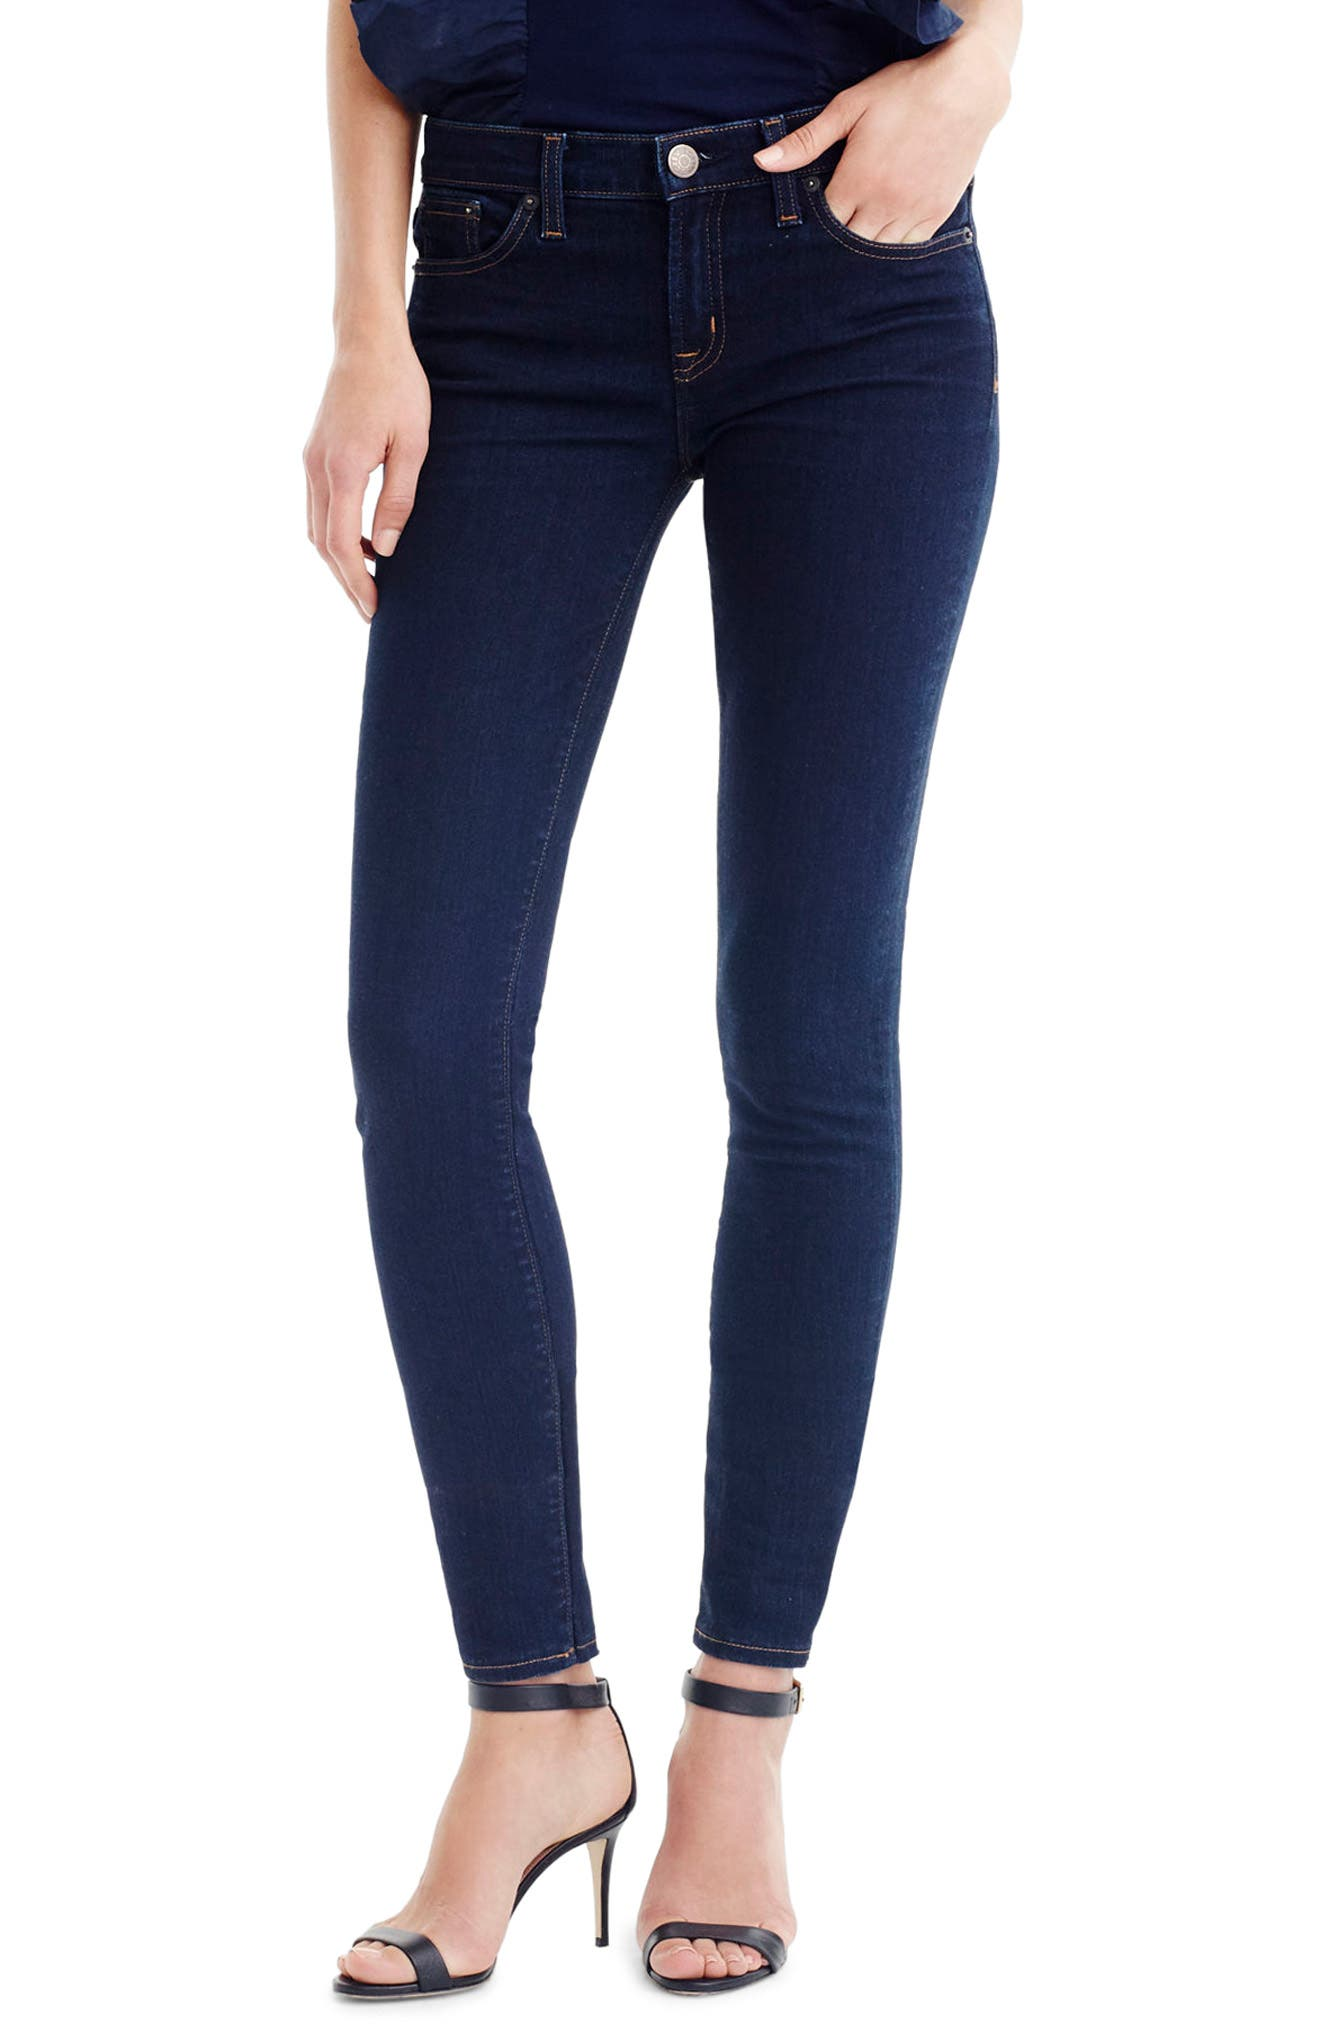 J.Crew Toothpick Crop Skinny Jeans (Classic Rinse)